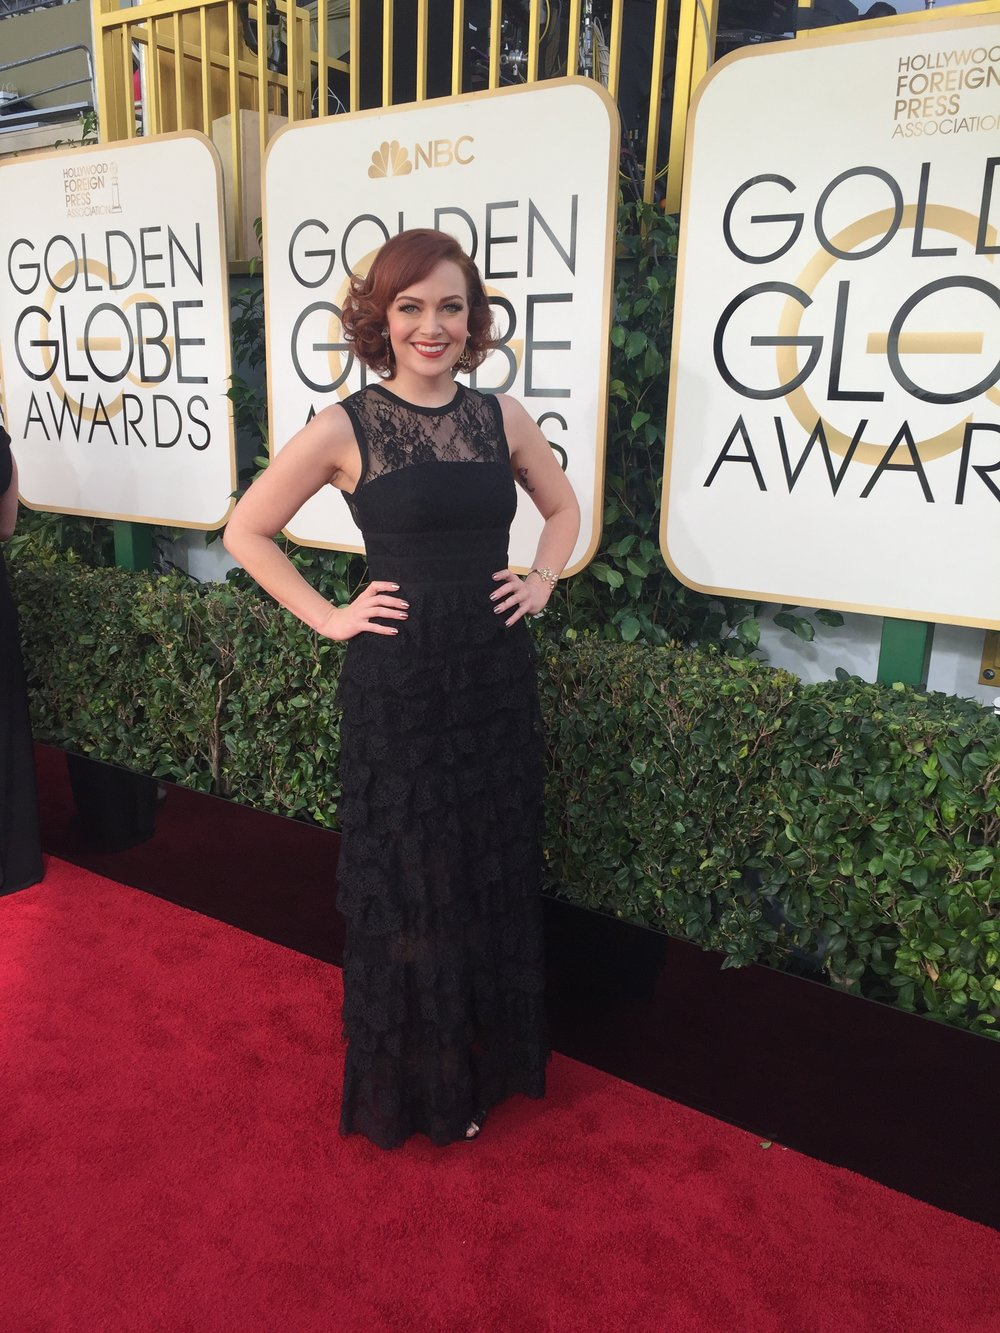 at the golden globe awards as film expert for nbc